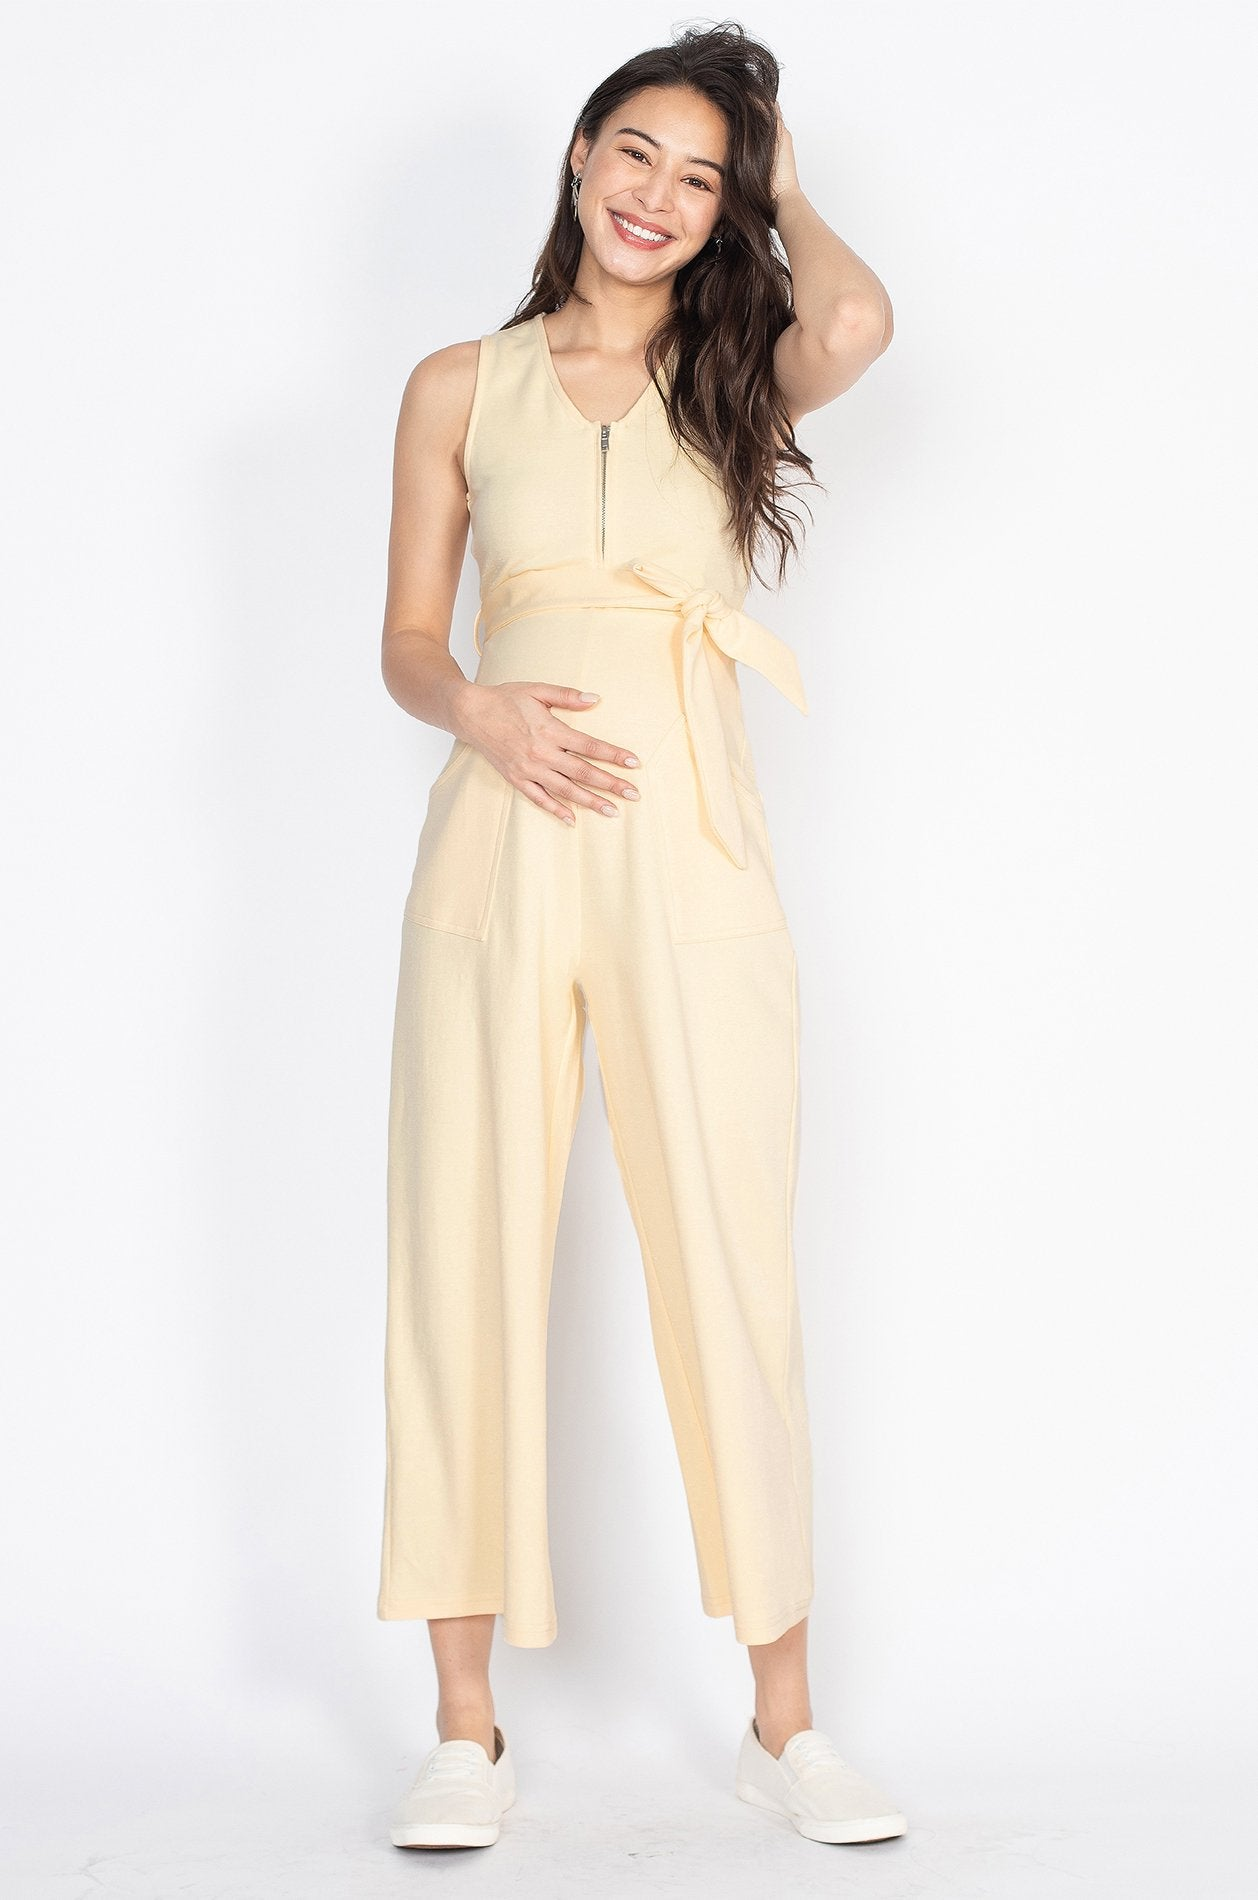 Kiara Nursing Jumpsuit in Pastel Yellow  by Jump Eat Cry - Maternity and nursing wear